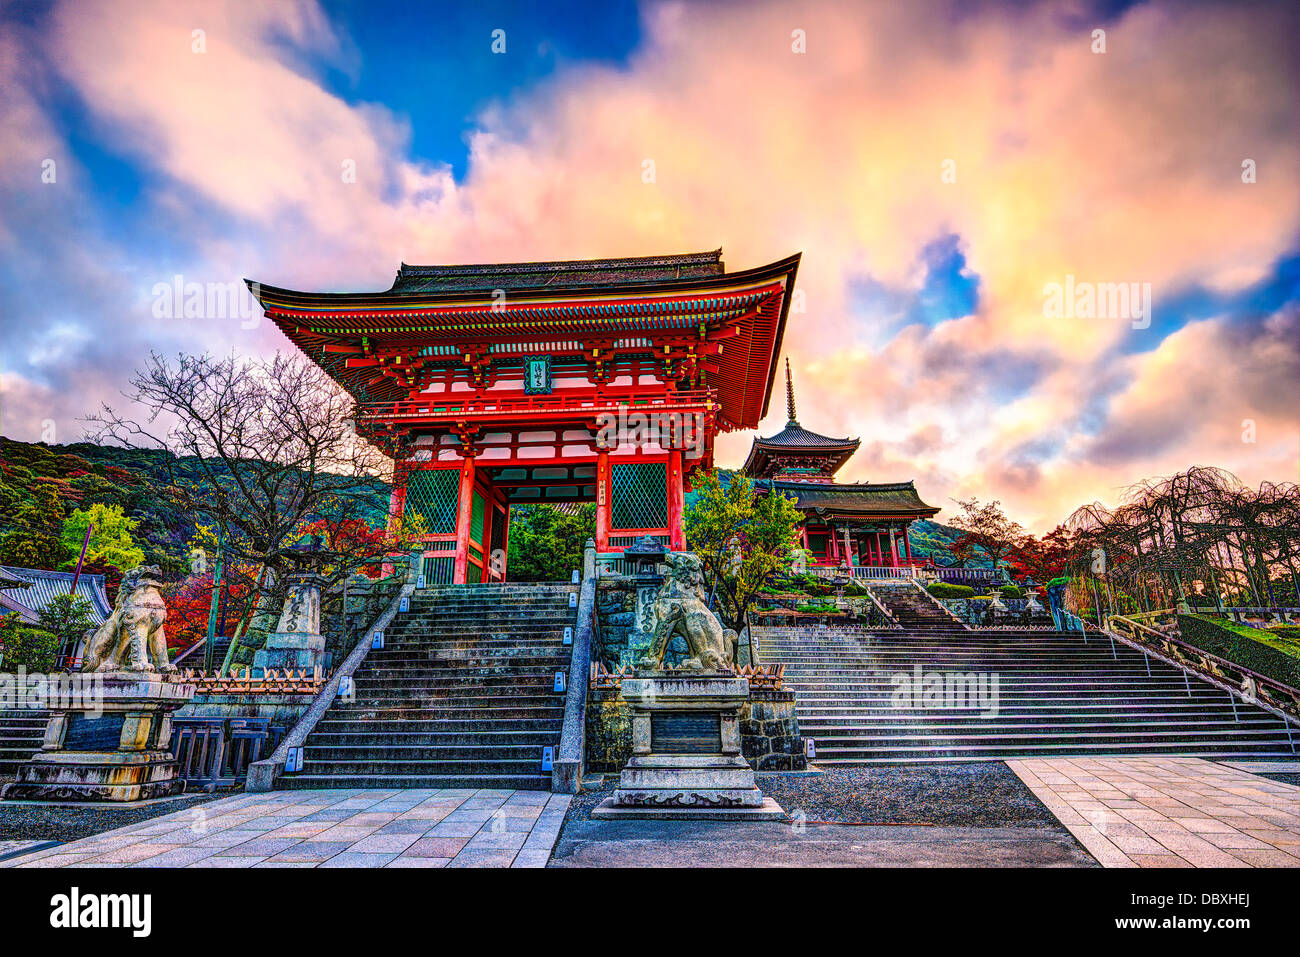 Kiyomizu-dera Temple Gate in Kyoto, Japan in the morning. - Stock Image